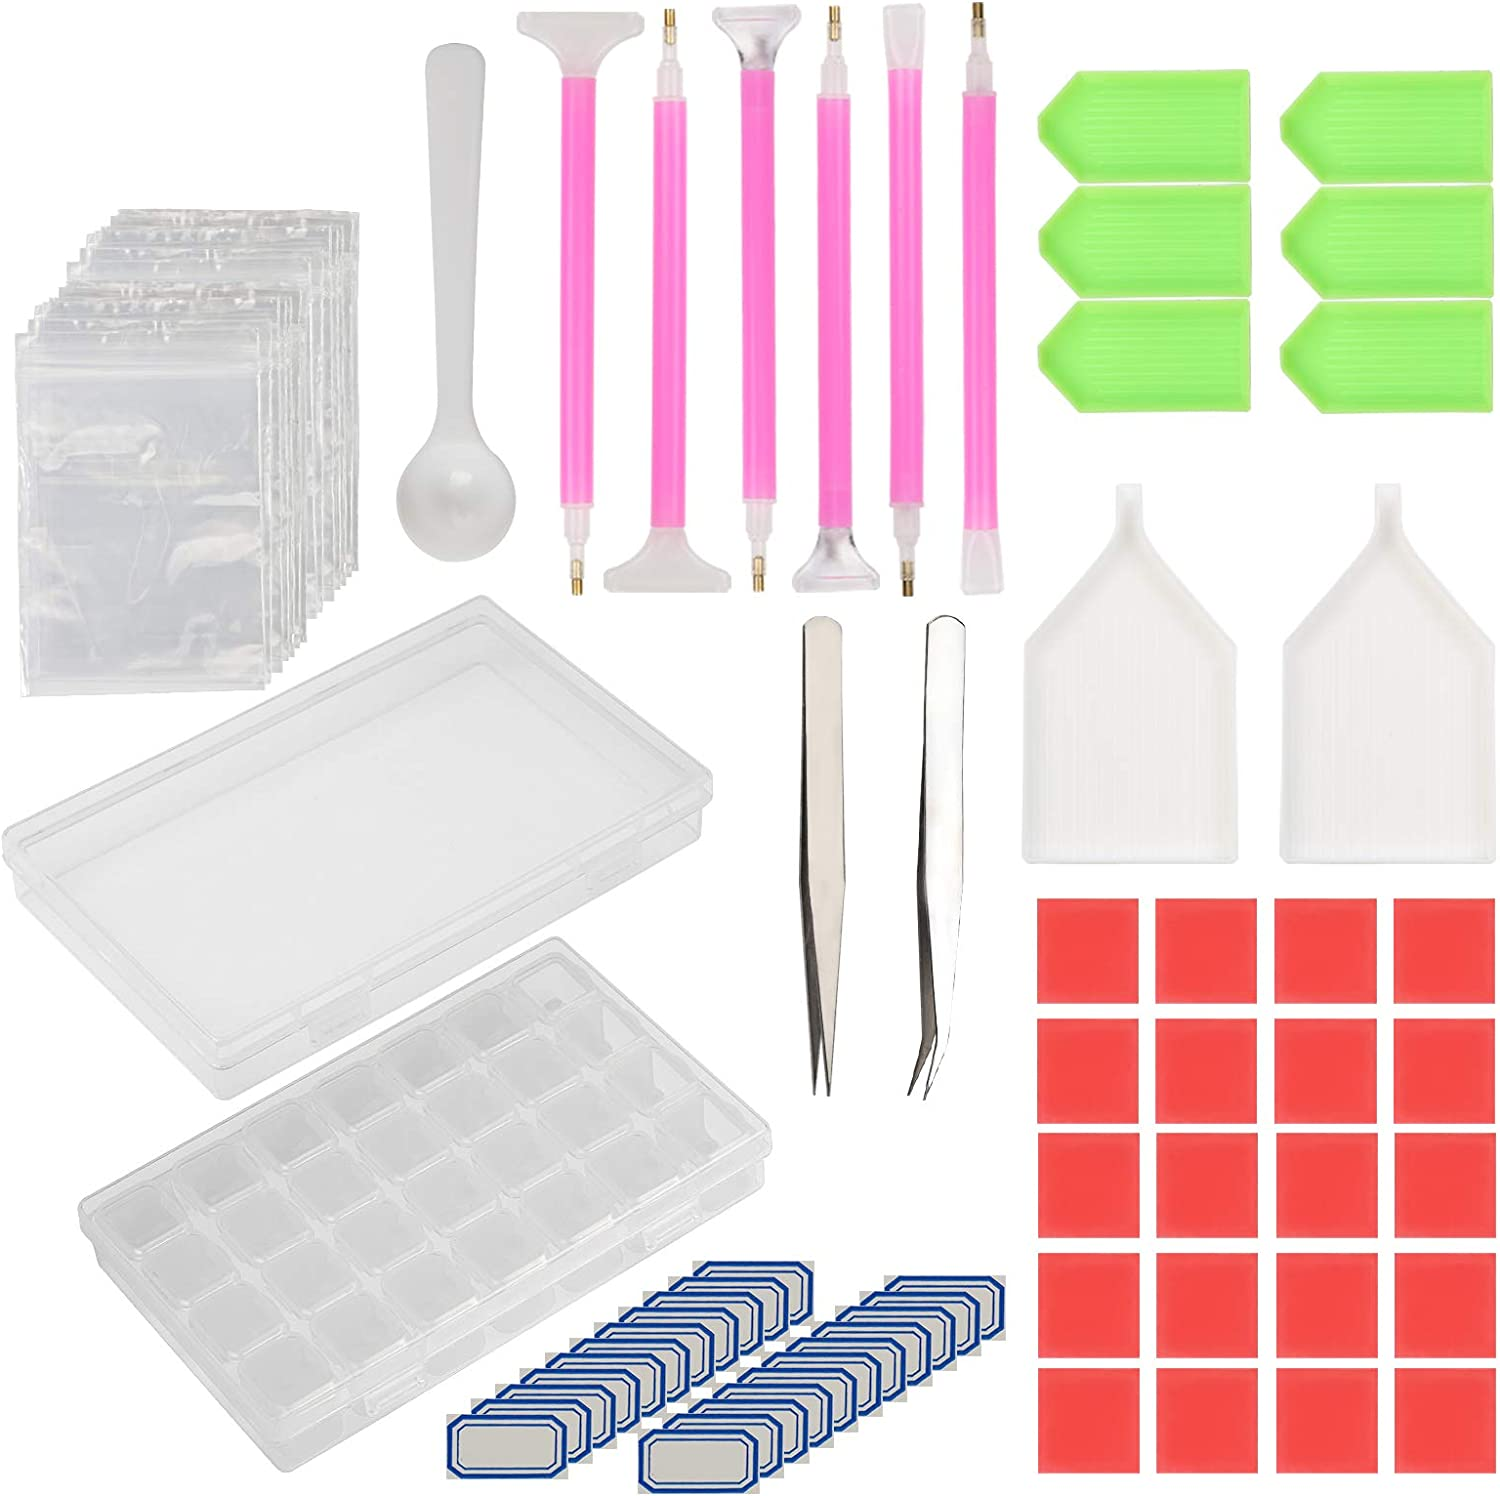 KAKOO DIY 5D Diamond Painting Werkzeug Set 134tlg